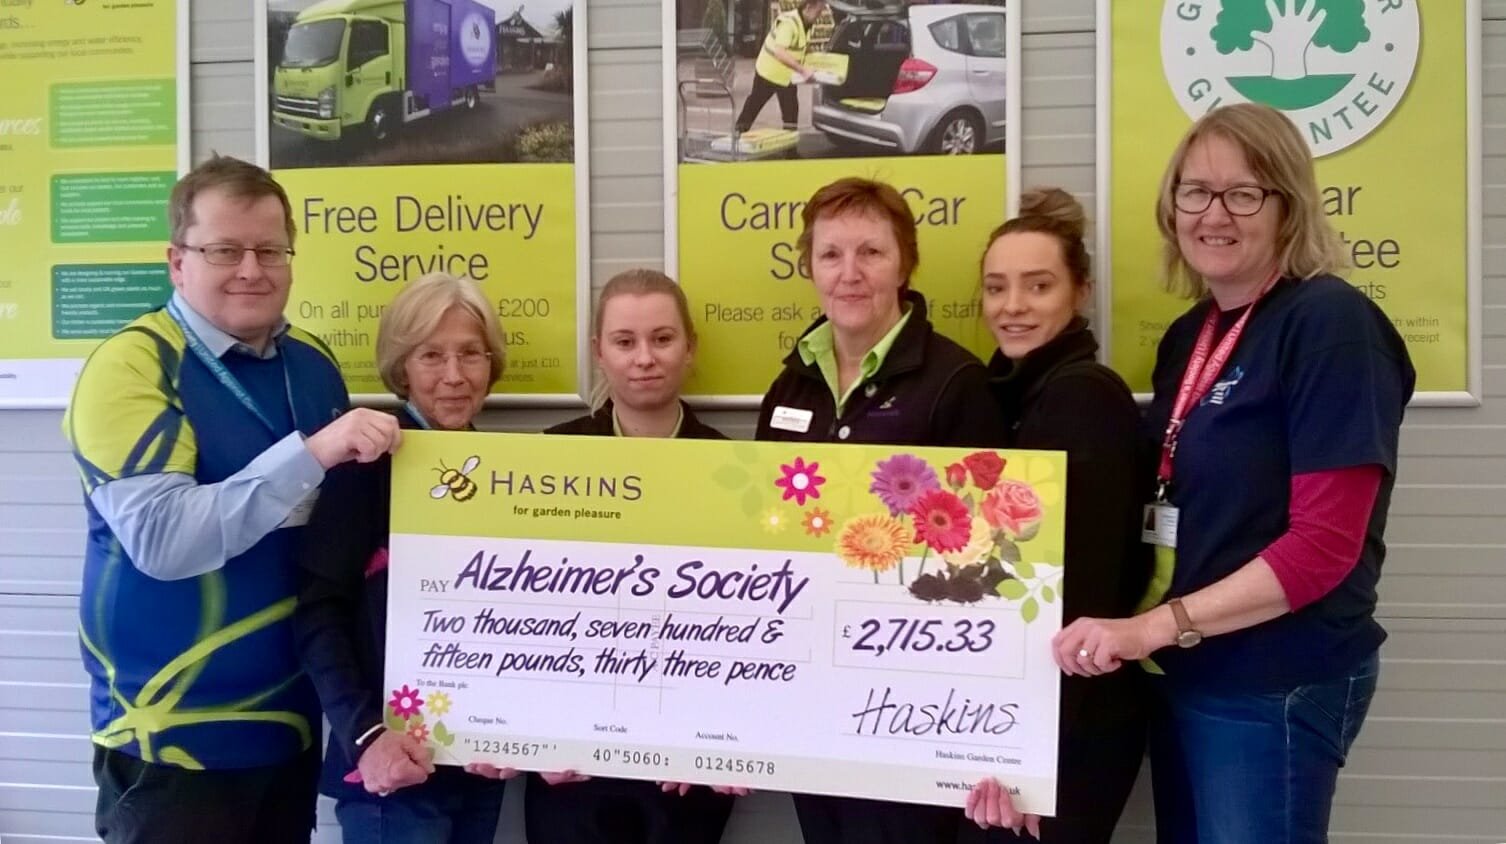 Haskins in Snowhill presented Alzheimer's Society